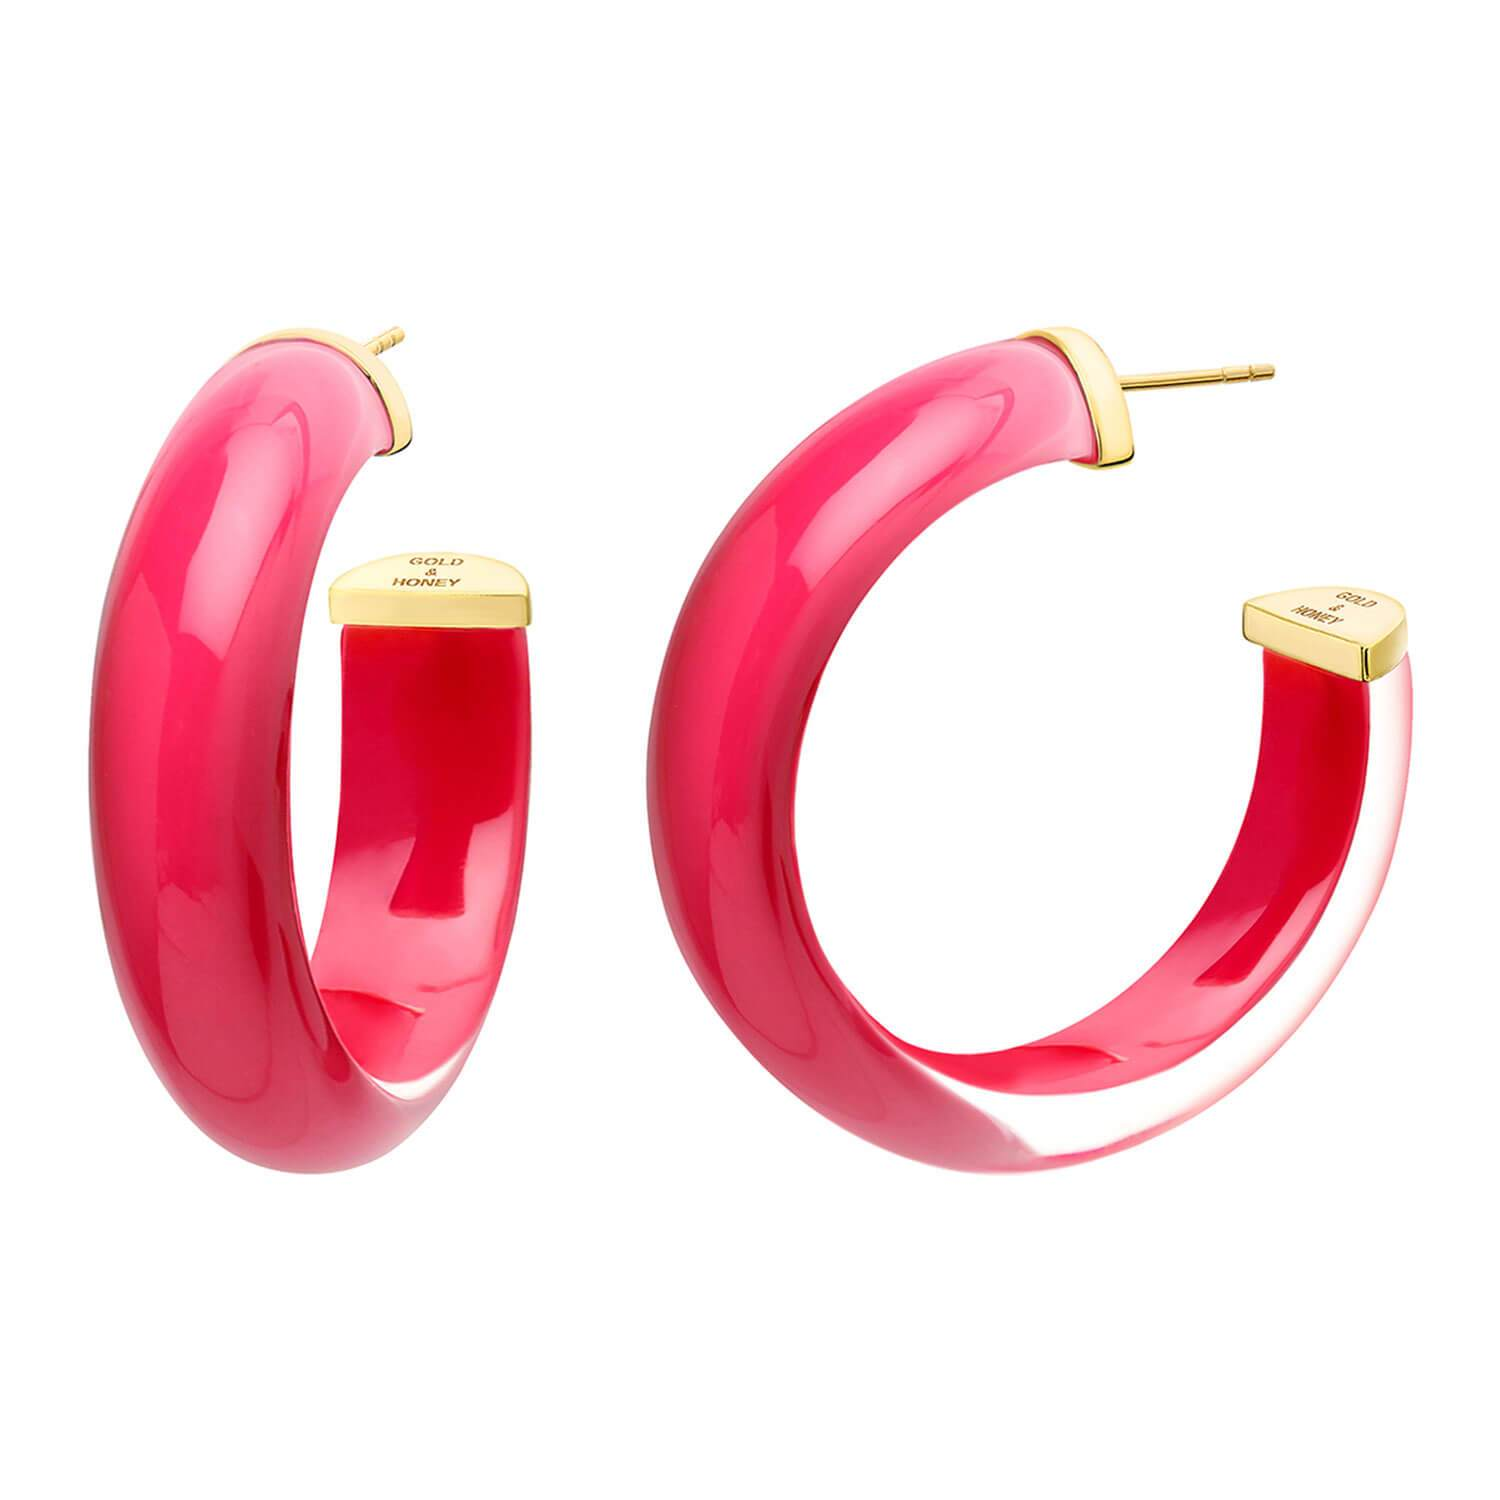 40mm Round Illusion Lucite Hoops